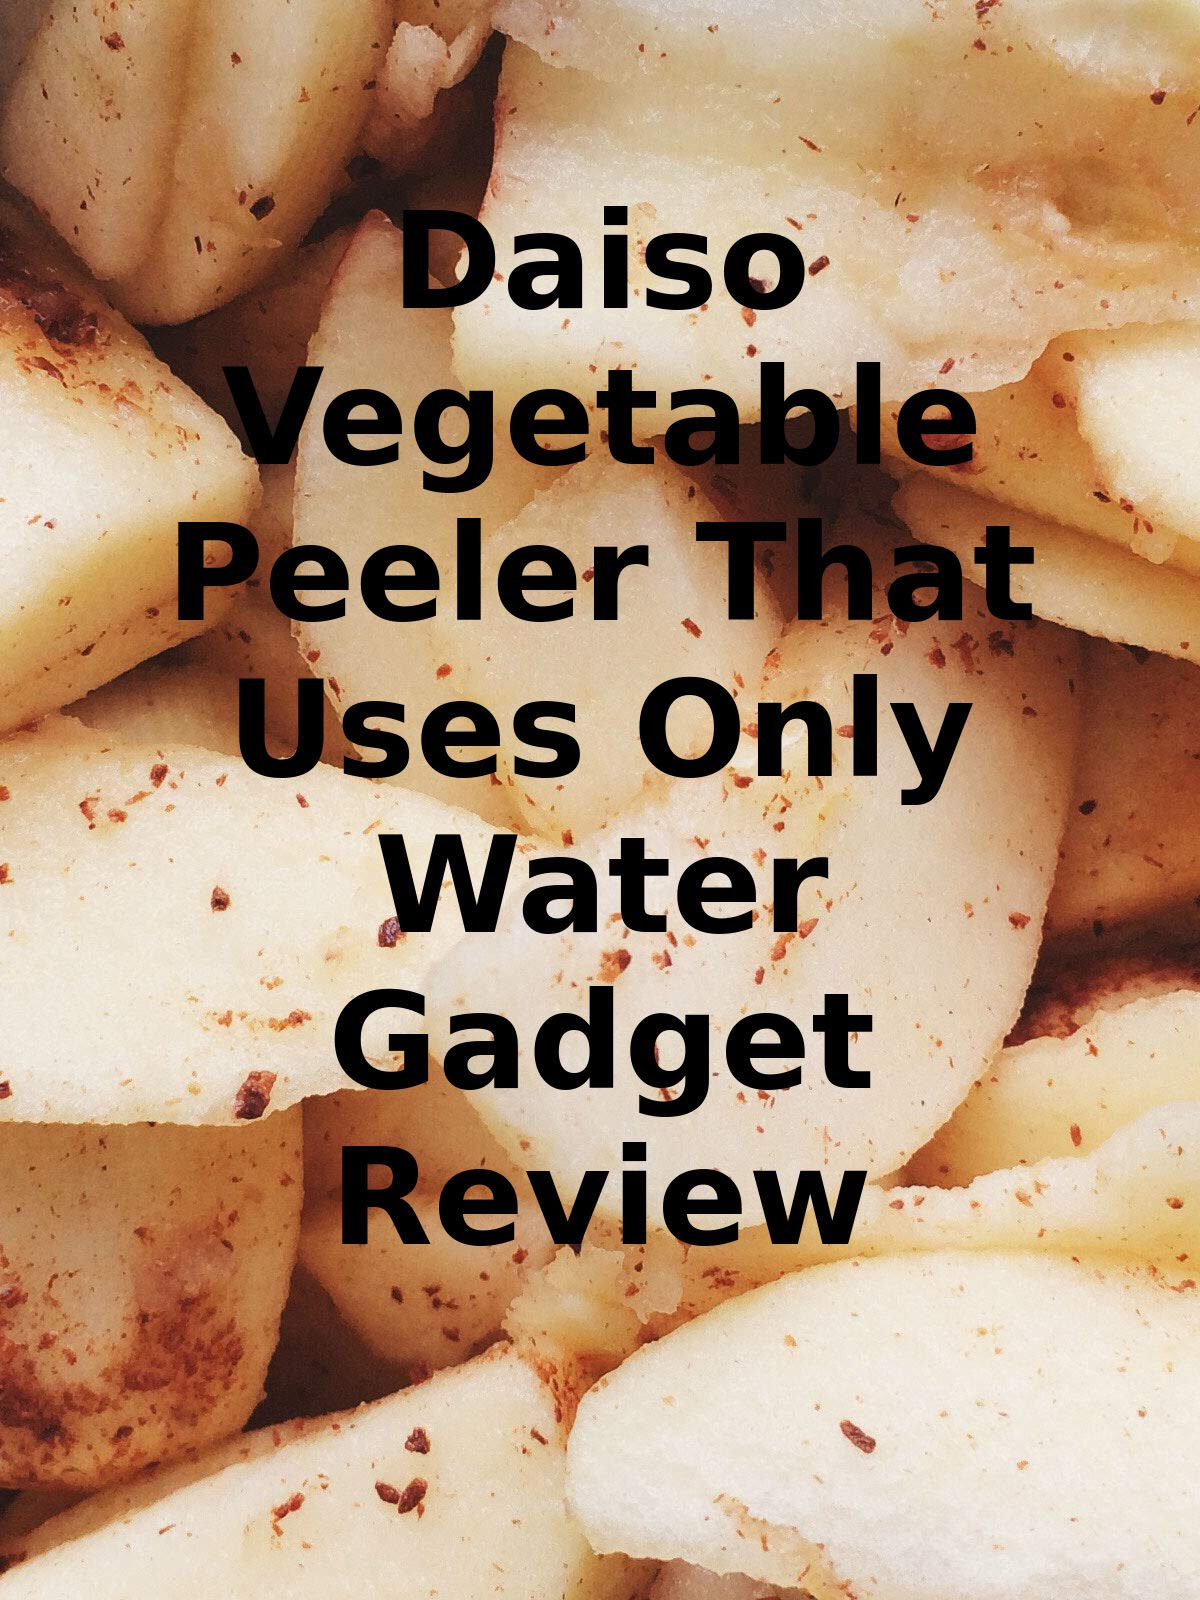 Review: Daiso Vegetable Peeler That Uses Only Water Gadget Review on Amazon Prime Video UK